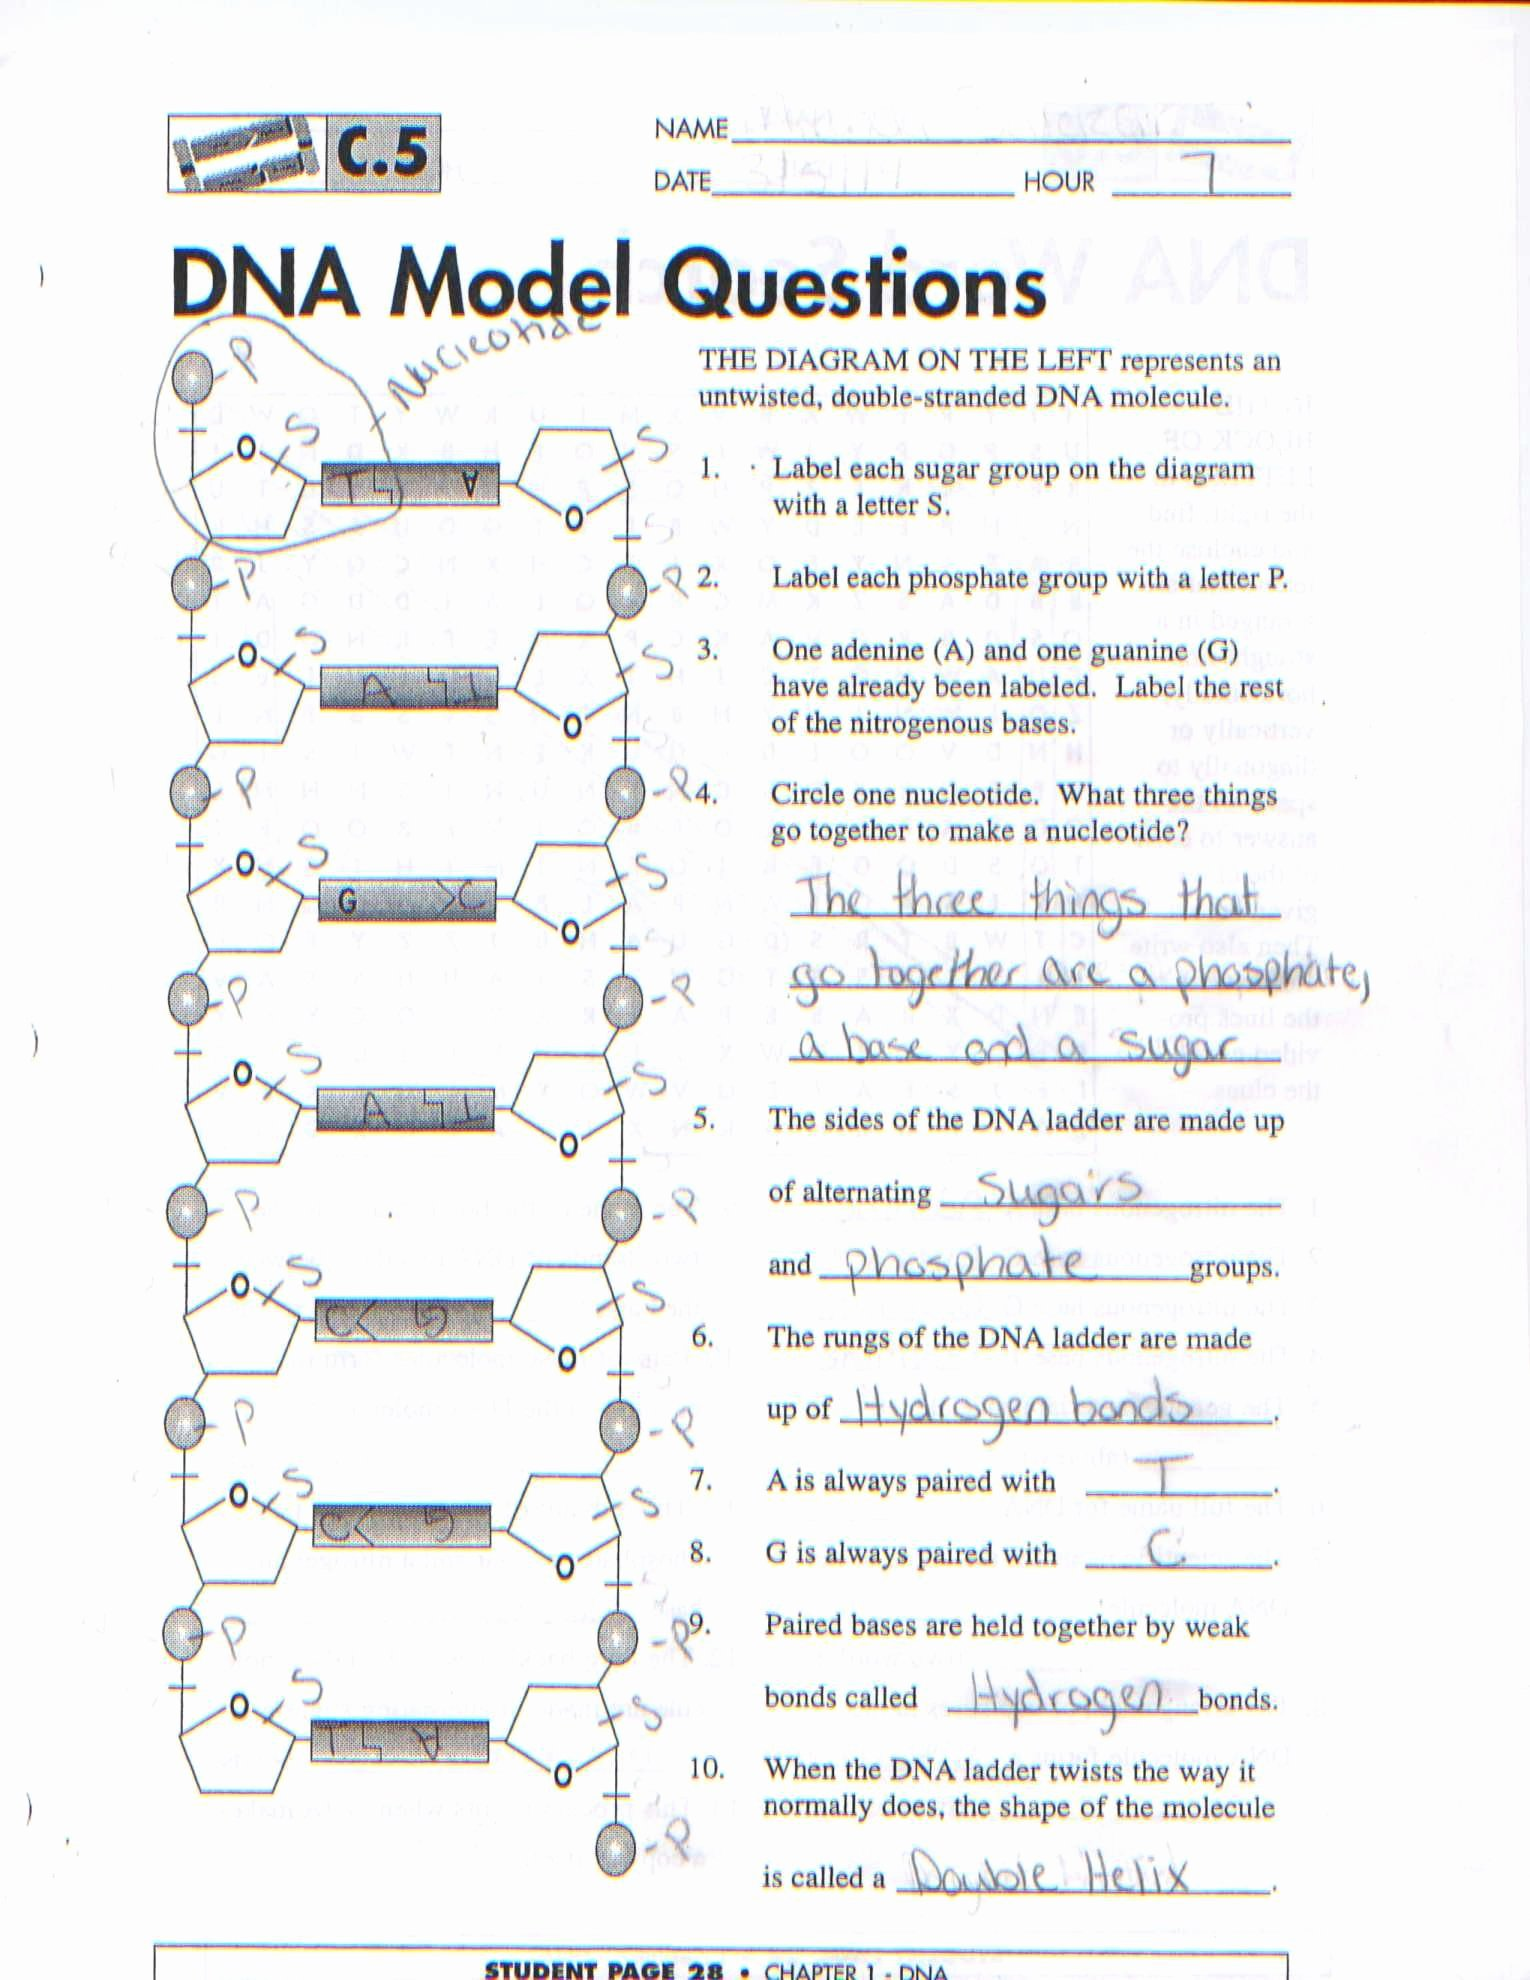 Atomic Structure Worksheet Answers Key Inspirational atomic Structure Review Worksheet Answer Key